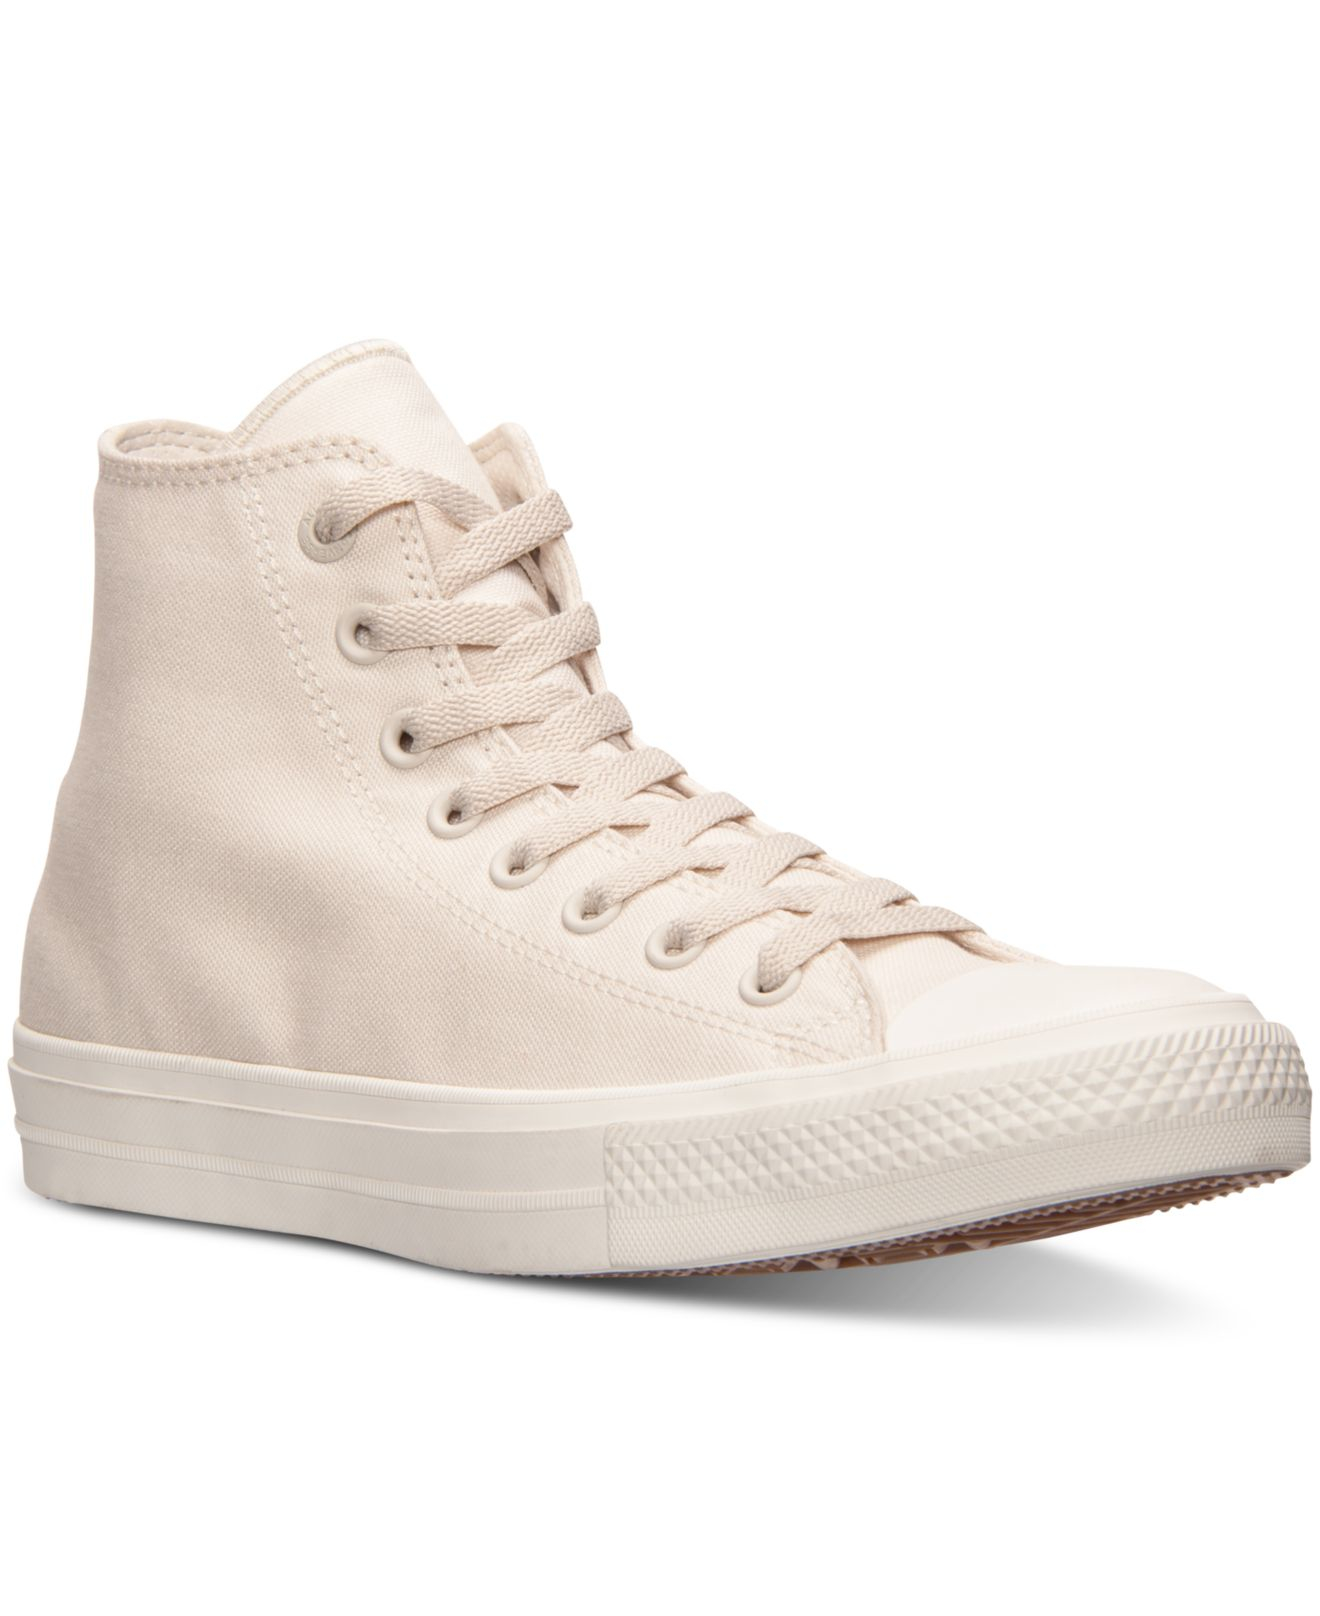 converse chuck taylor all star ii ox canvas shoe - parchment